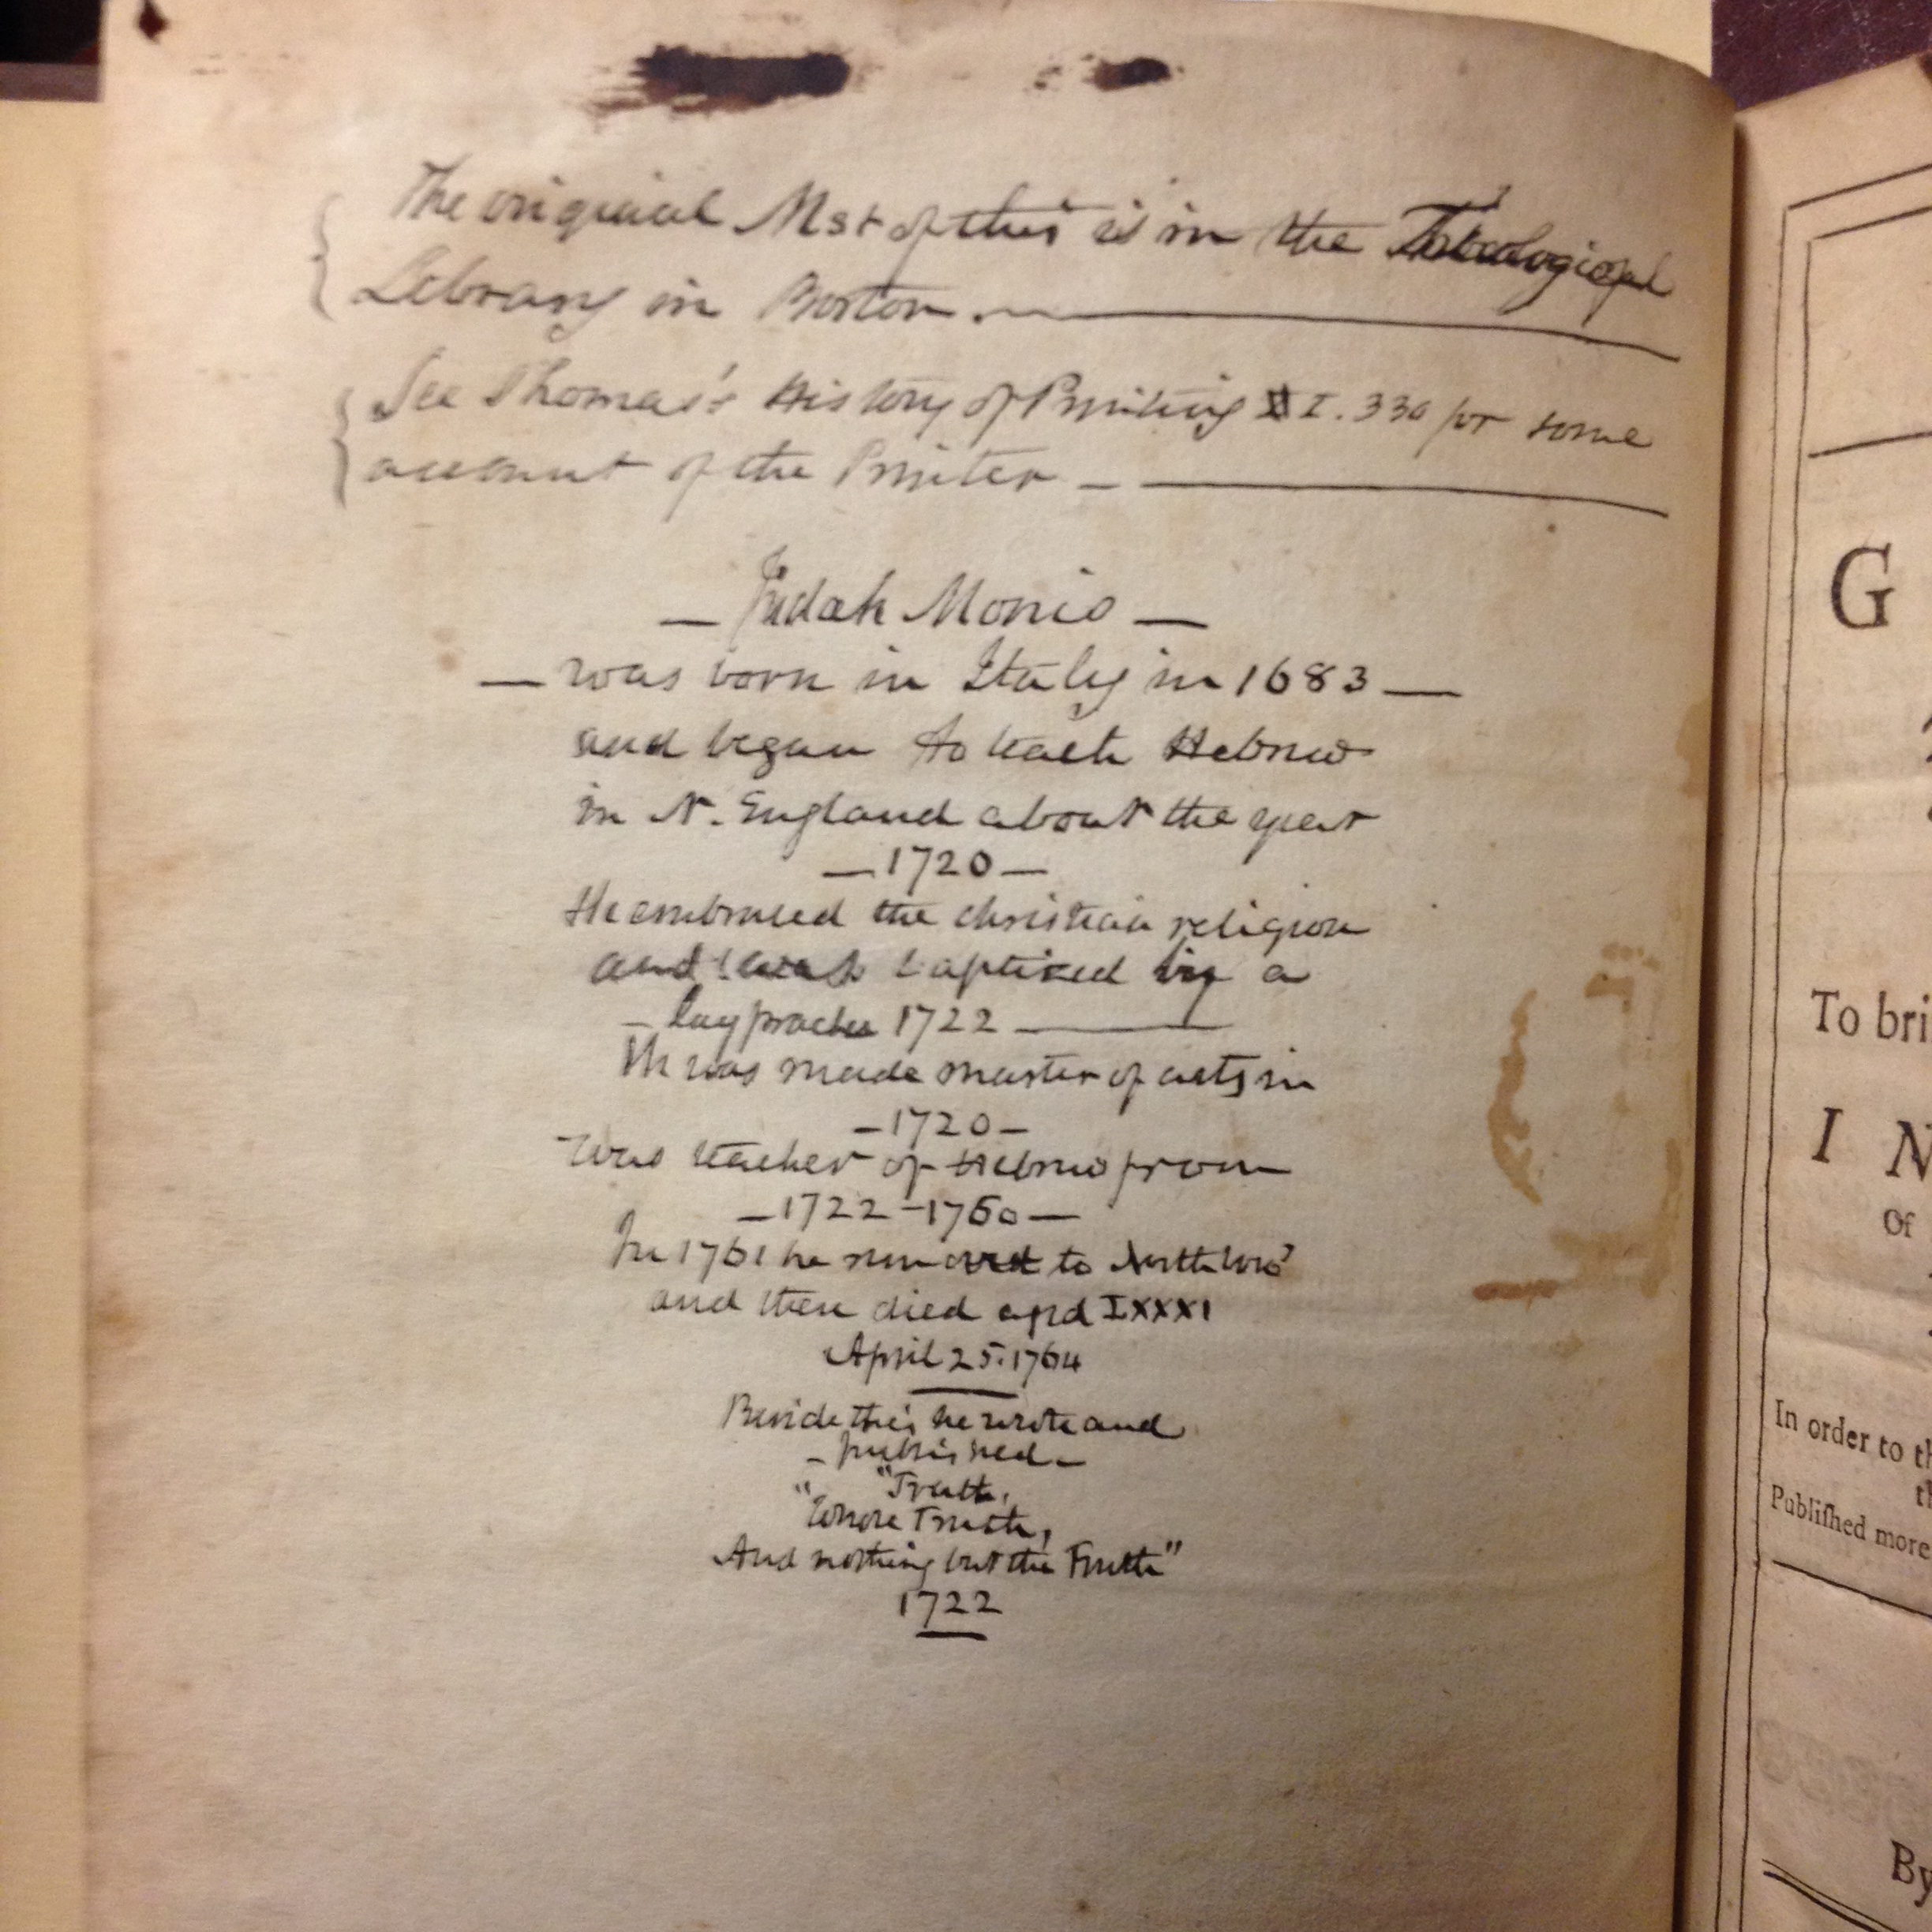 Wandering in the Stacks: the Americas, Spanish & Portuguese, and